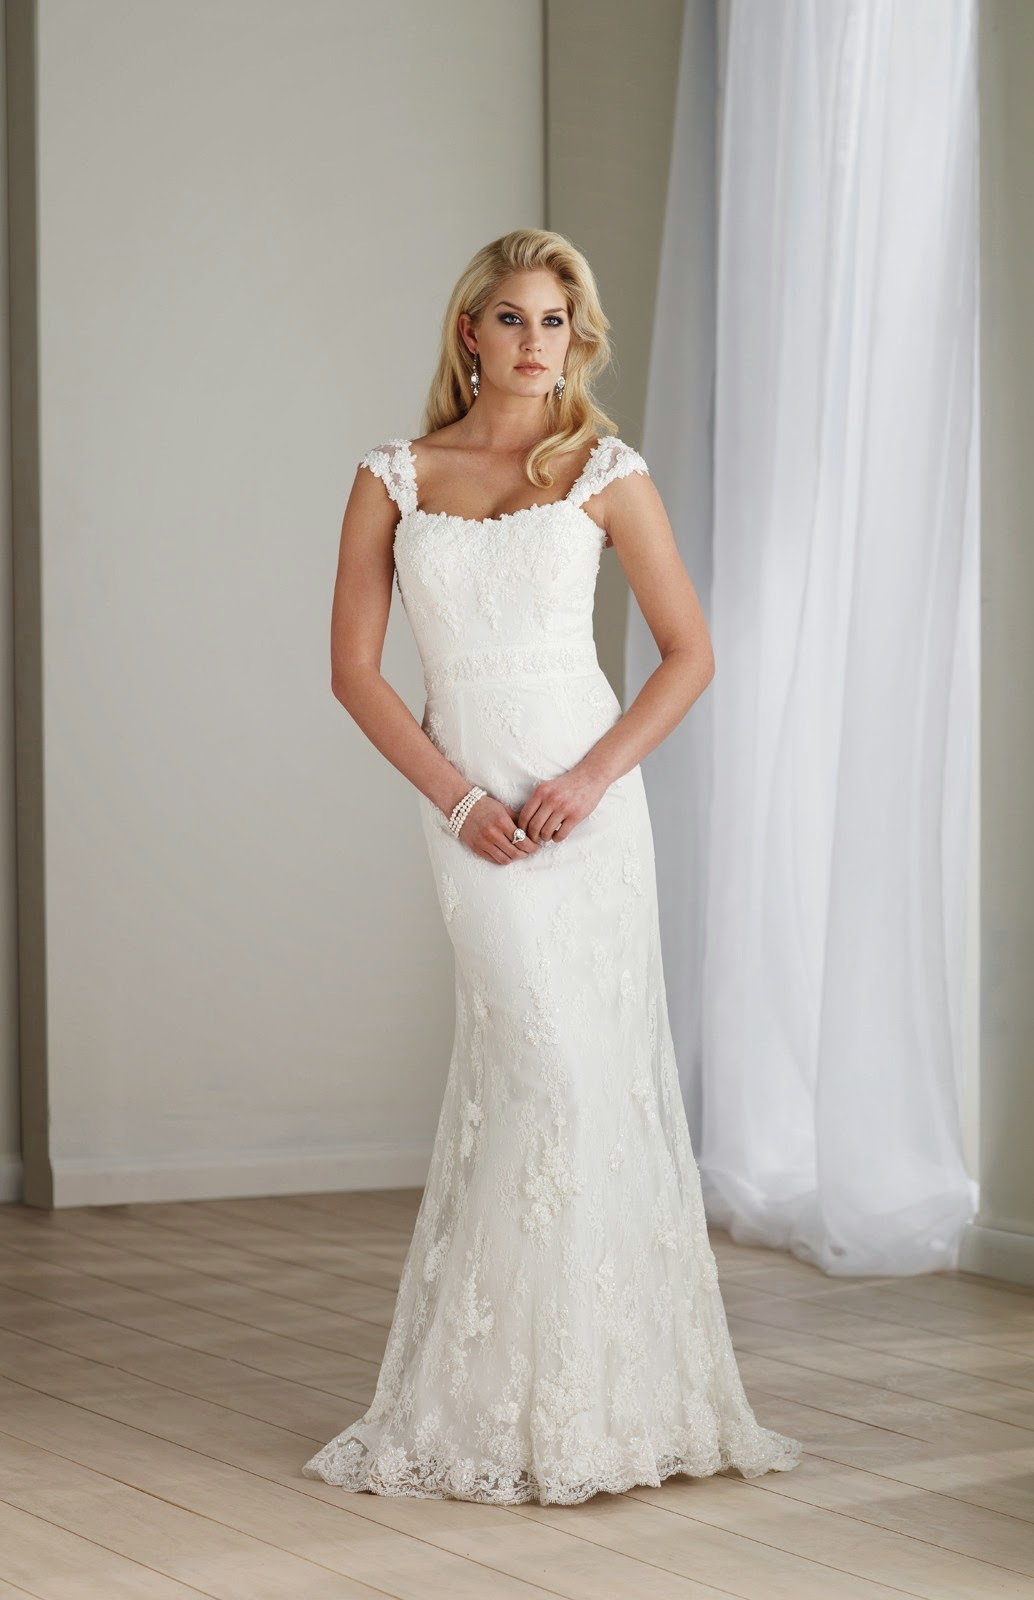 Superieur Wedding Dress Collections   Blogspot